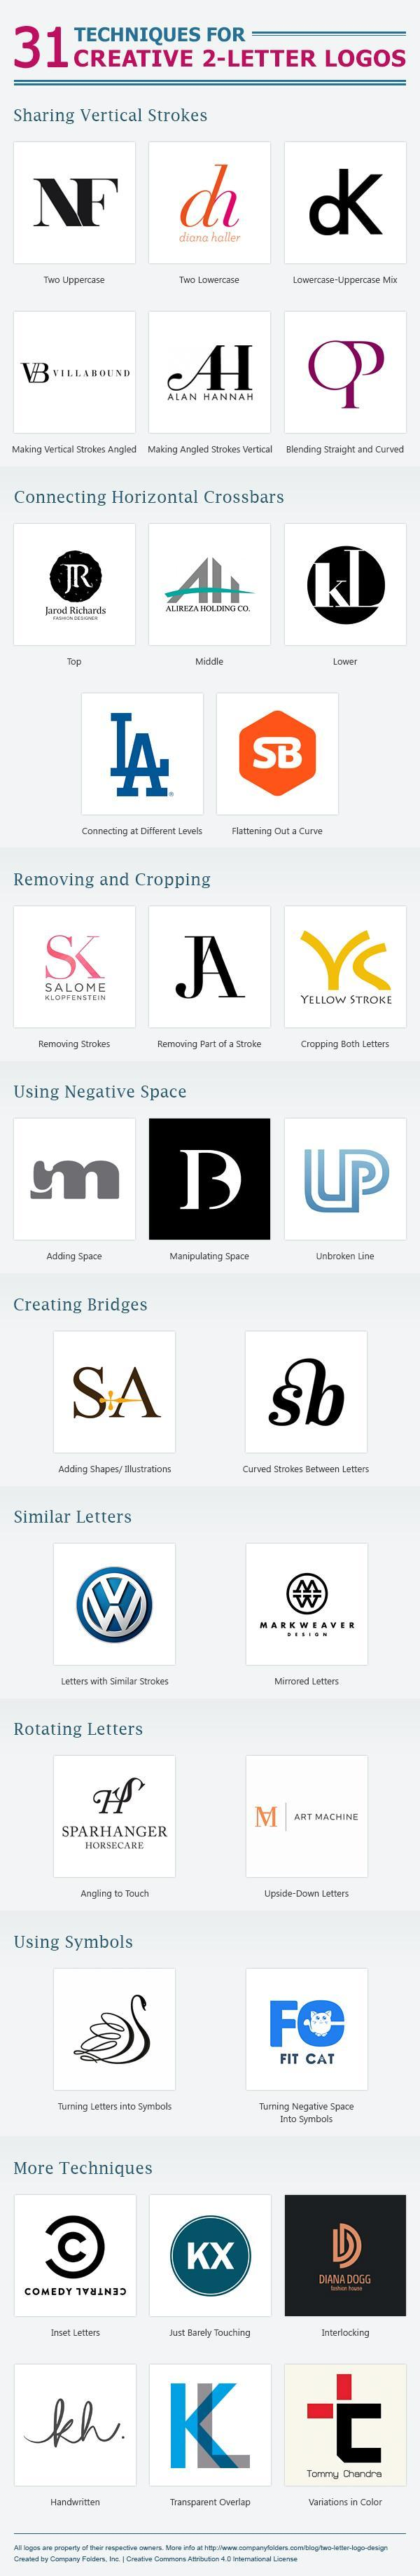 personal-branding-with-two-letter-logo-designs